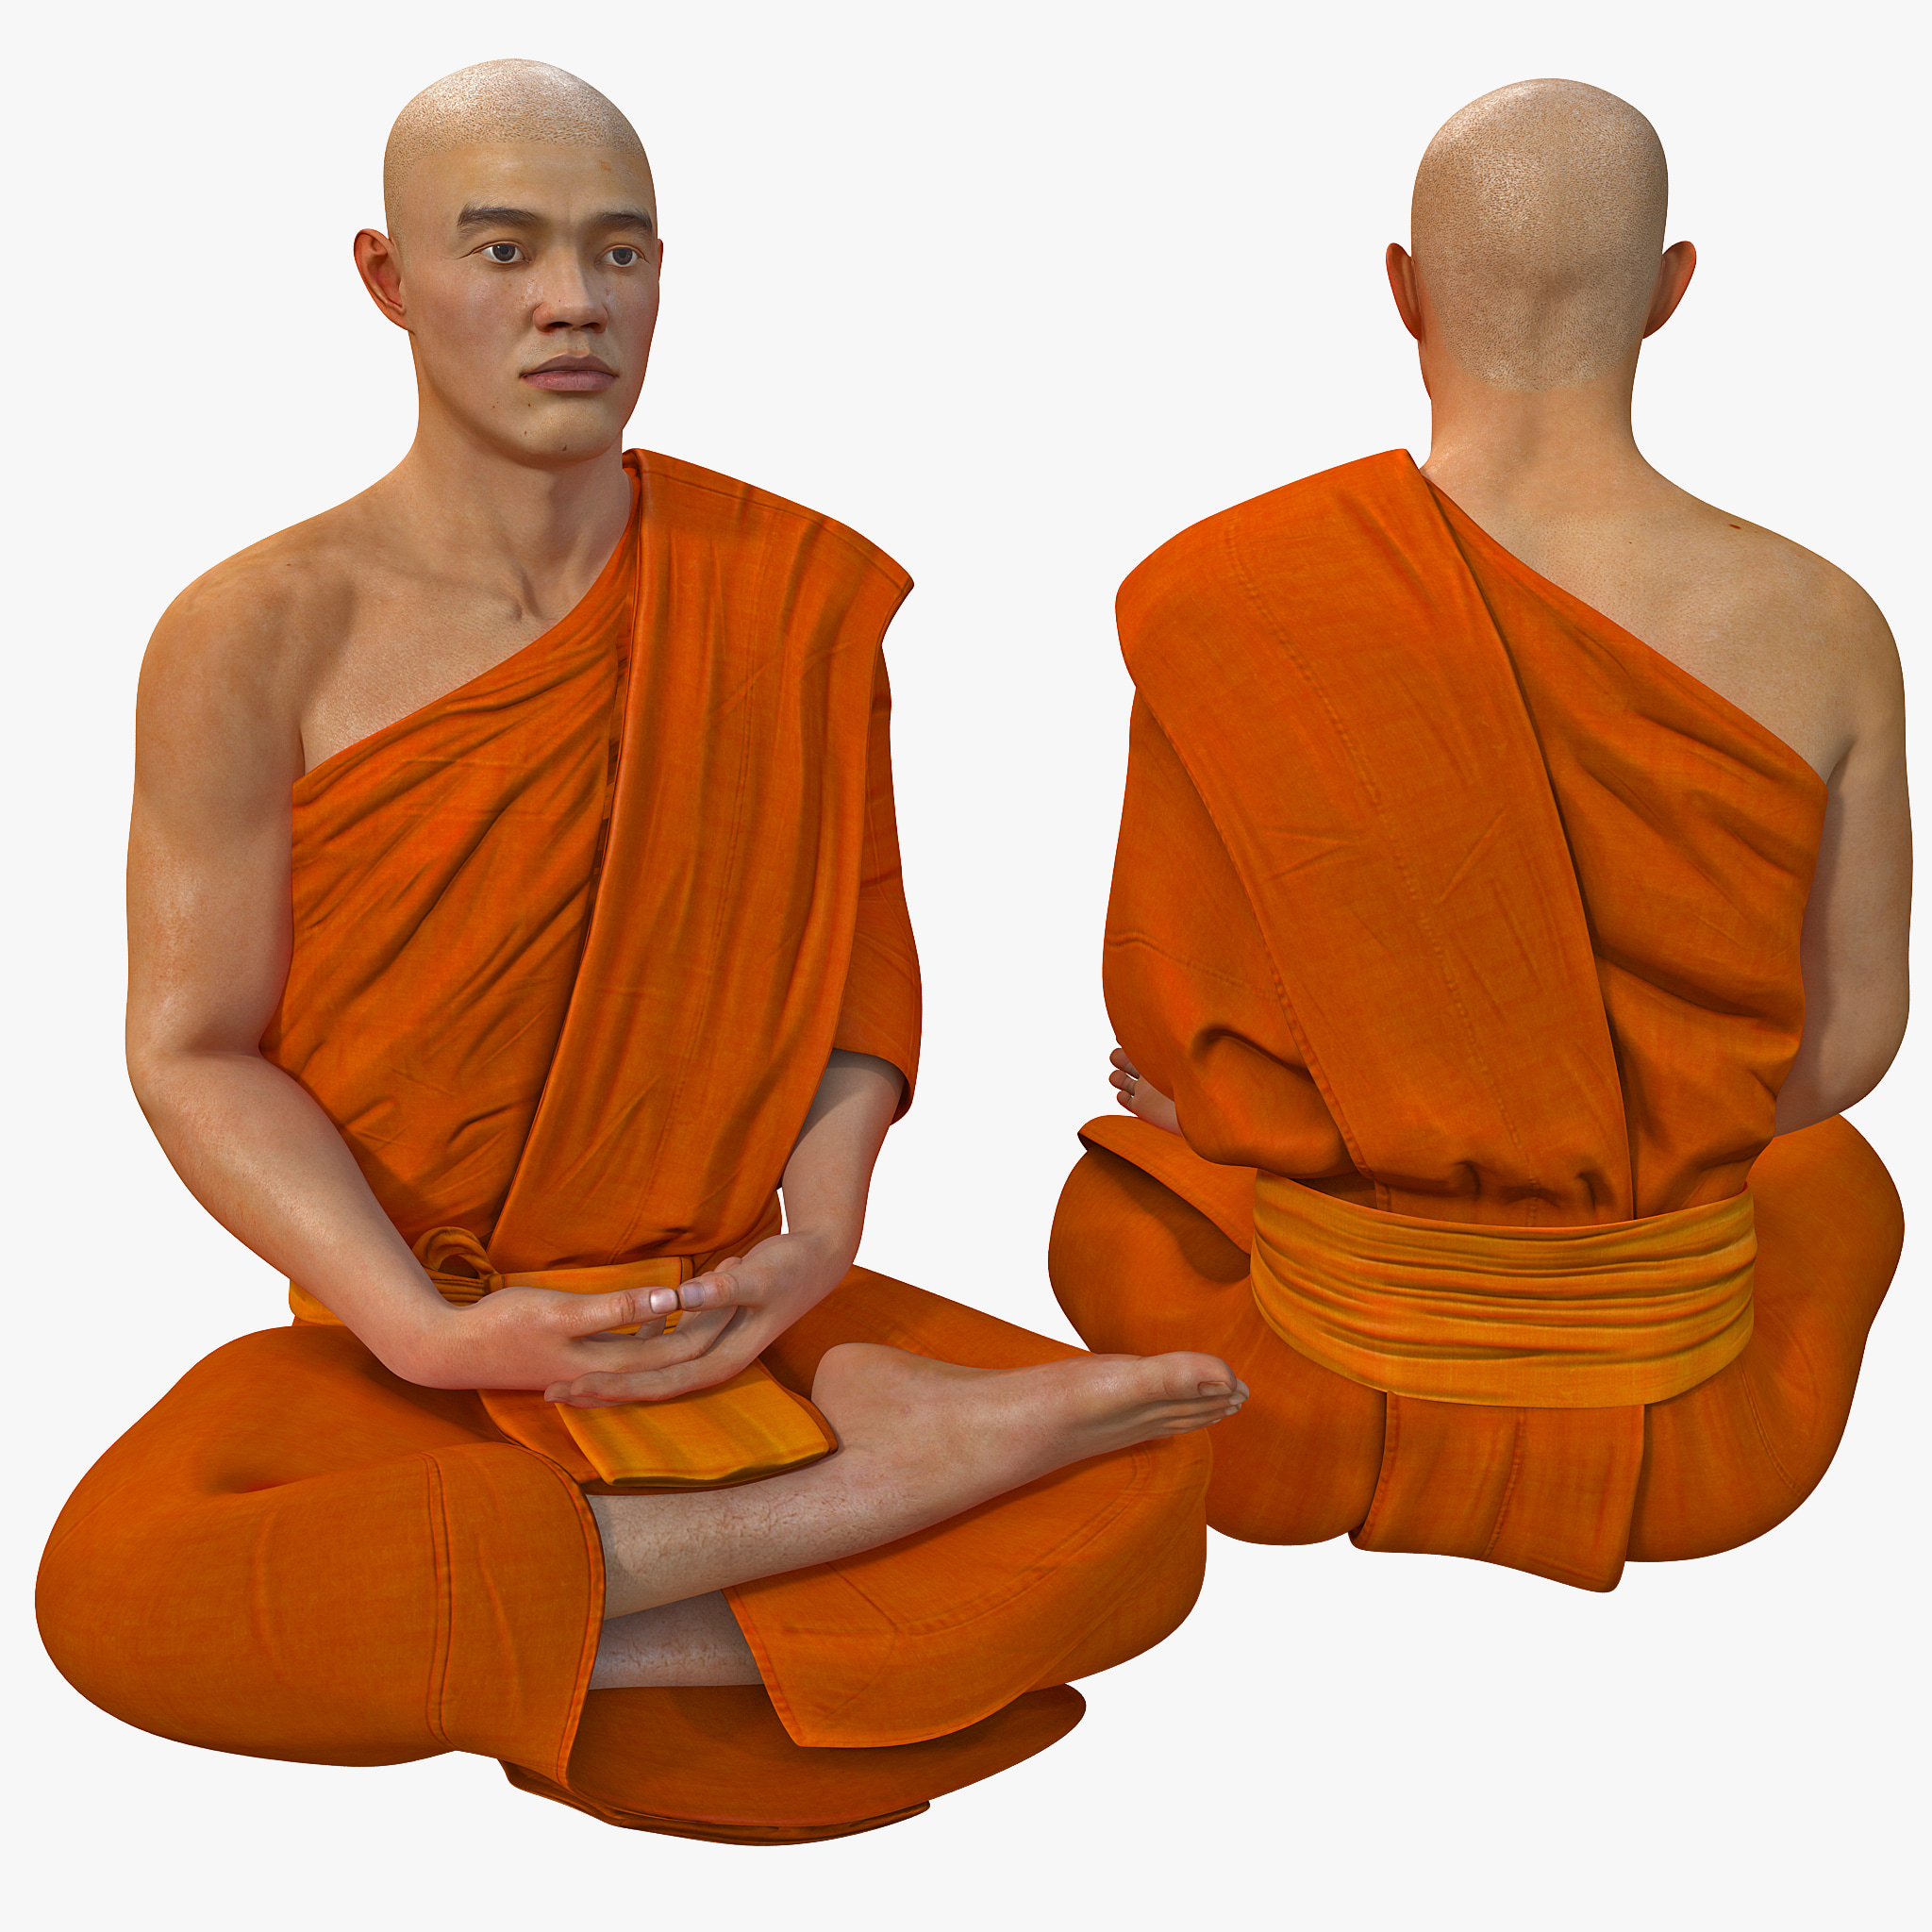 buddhist single men in denton Single edmonton buddhist men interested in buddhist dating looking for edmonton buddhist men browse the profile previews below and you may just see if you can find your ideal match.